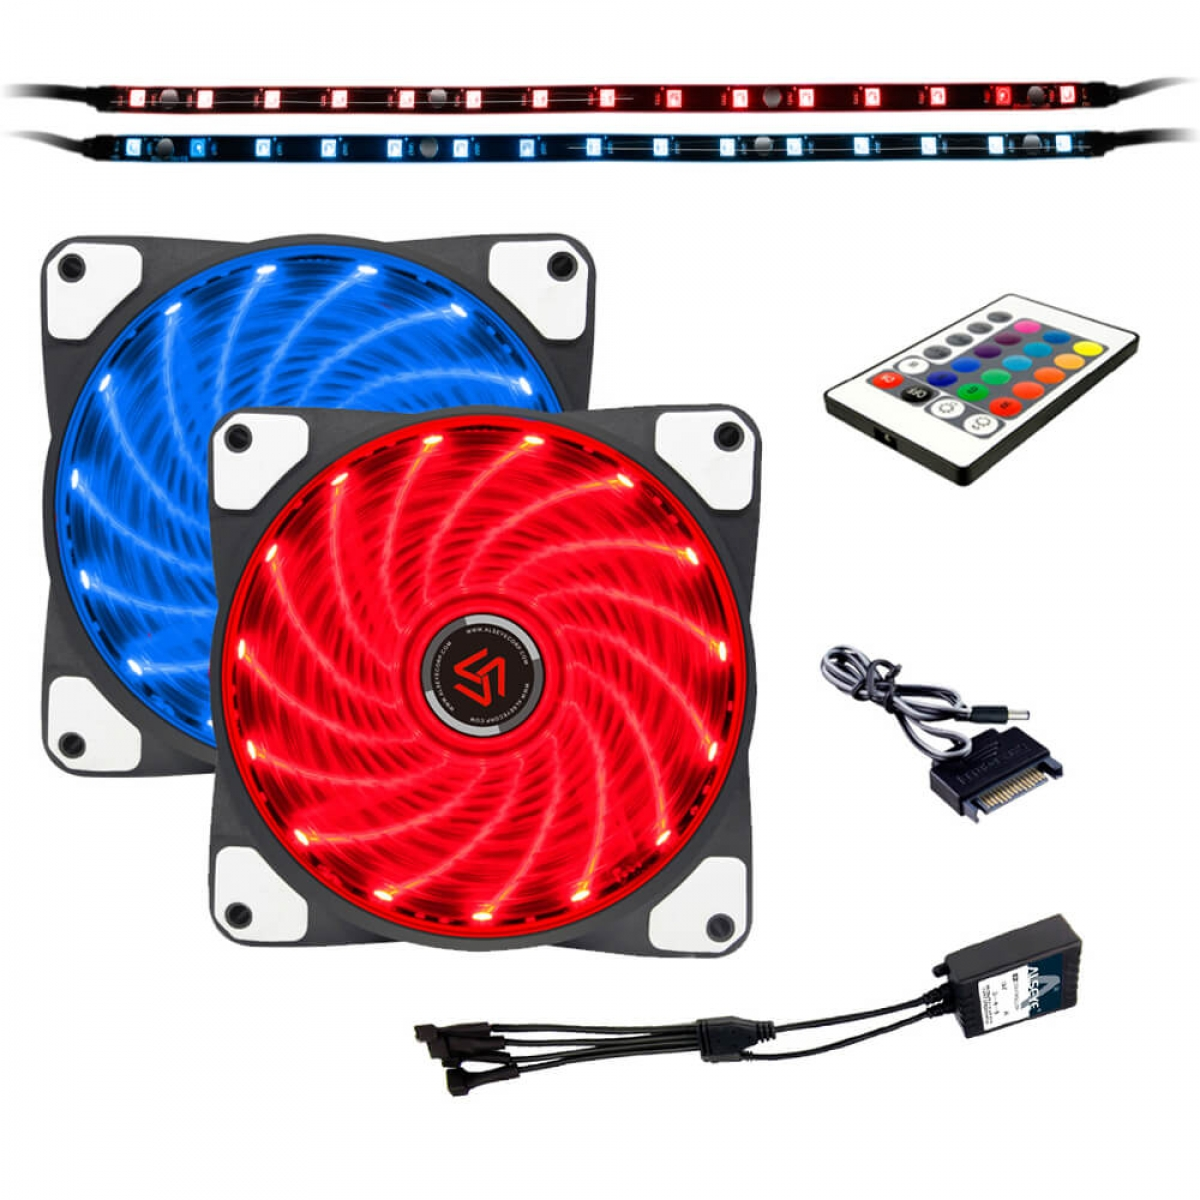 Kit Fan com 2 Unidades Alseye Case Light, RGB 120mm, Fita LED, com Controlador, CLS-200